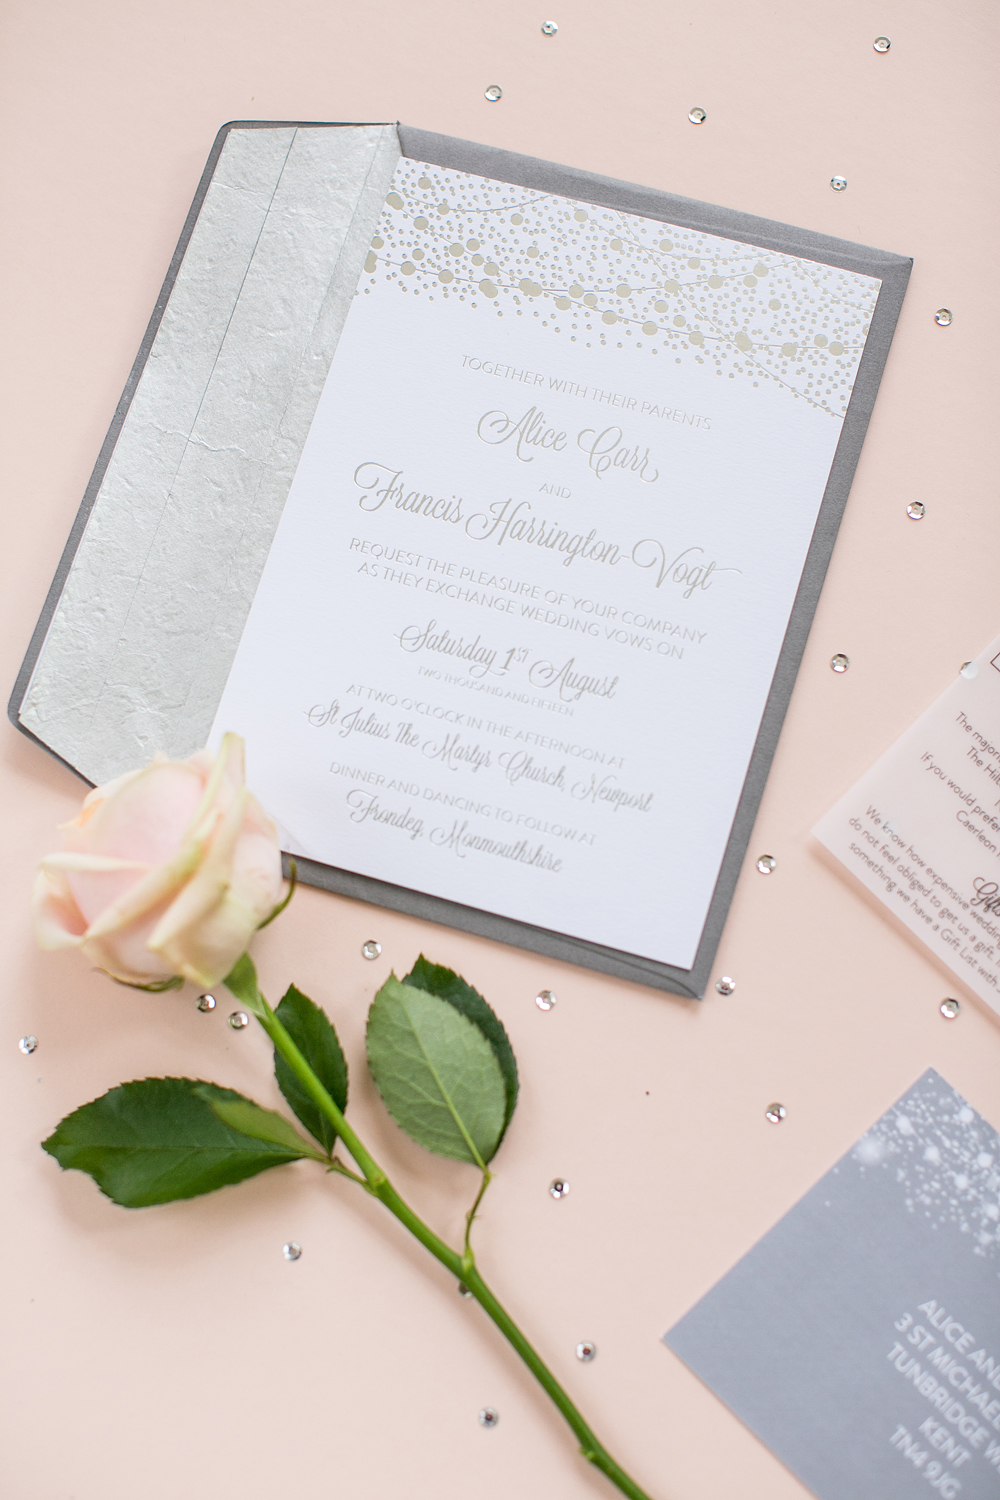 Alice and Francis' silver foiled wedding invitation